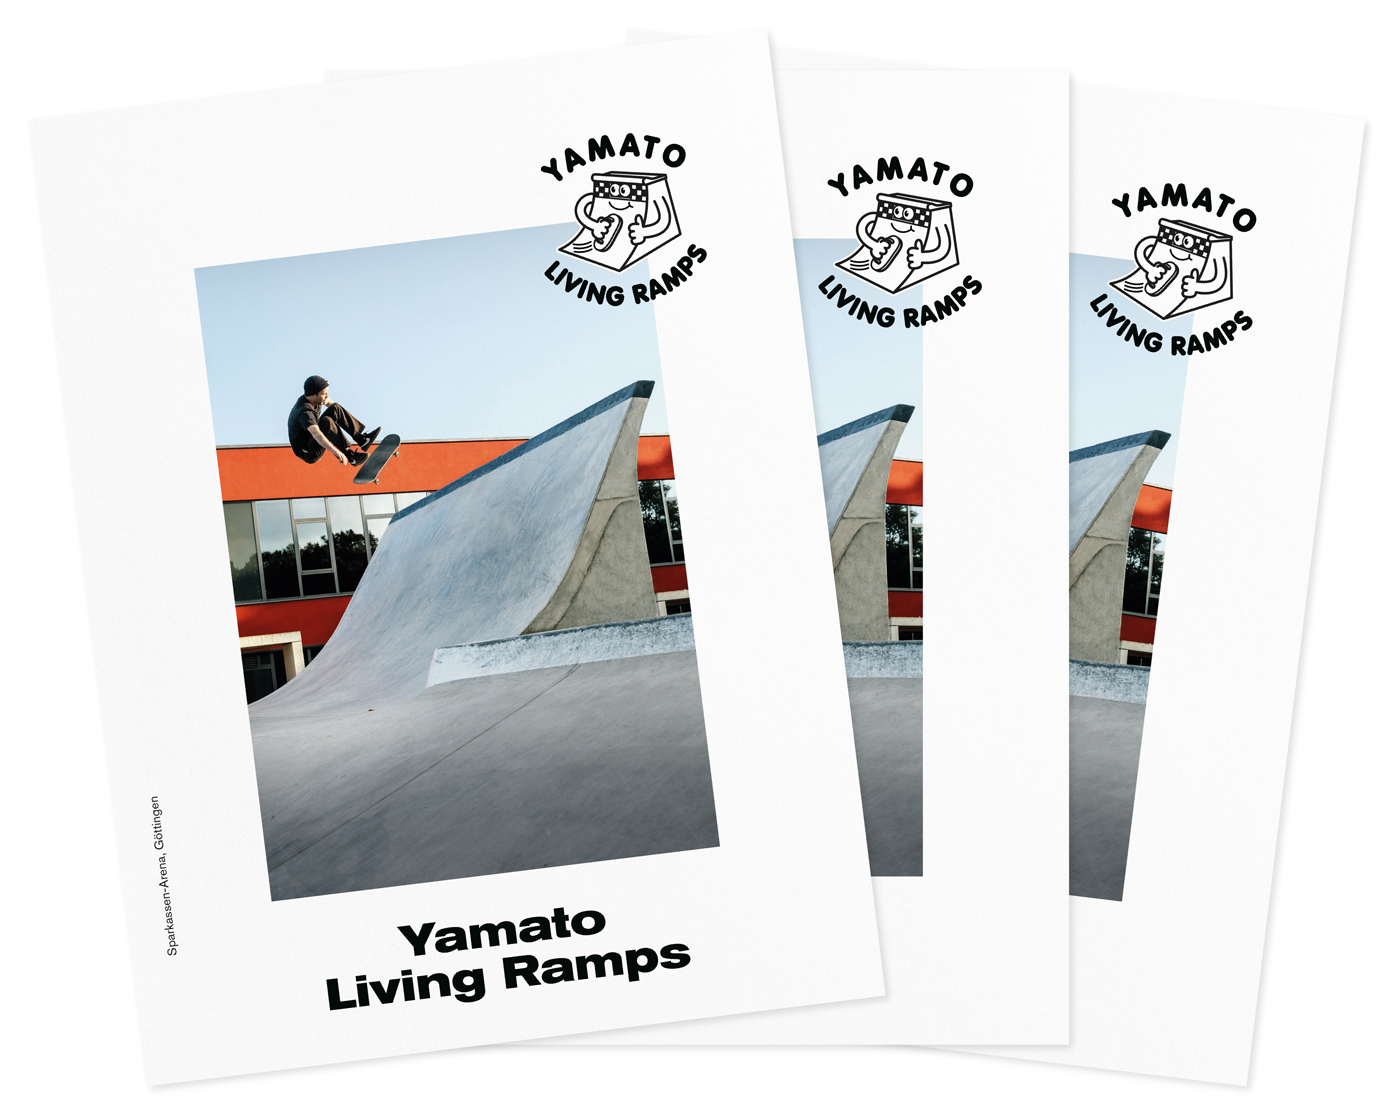 YAMATO LIVING RAMPS Infomaterial